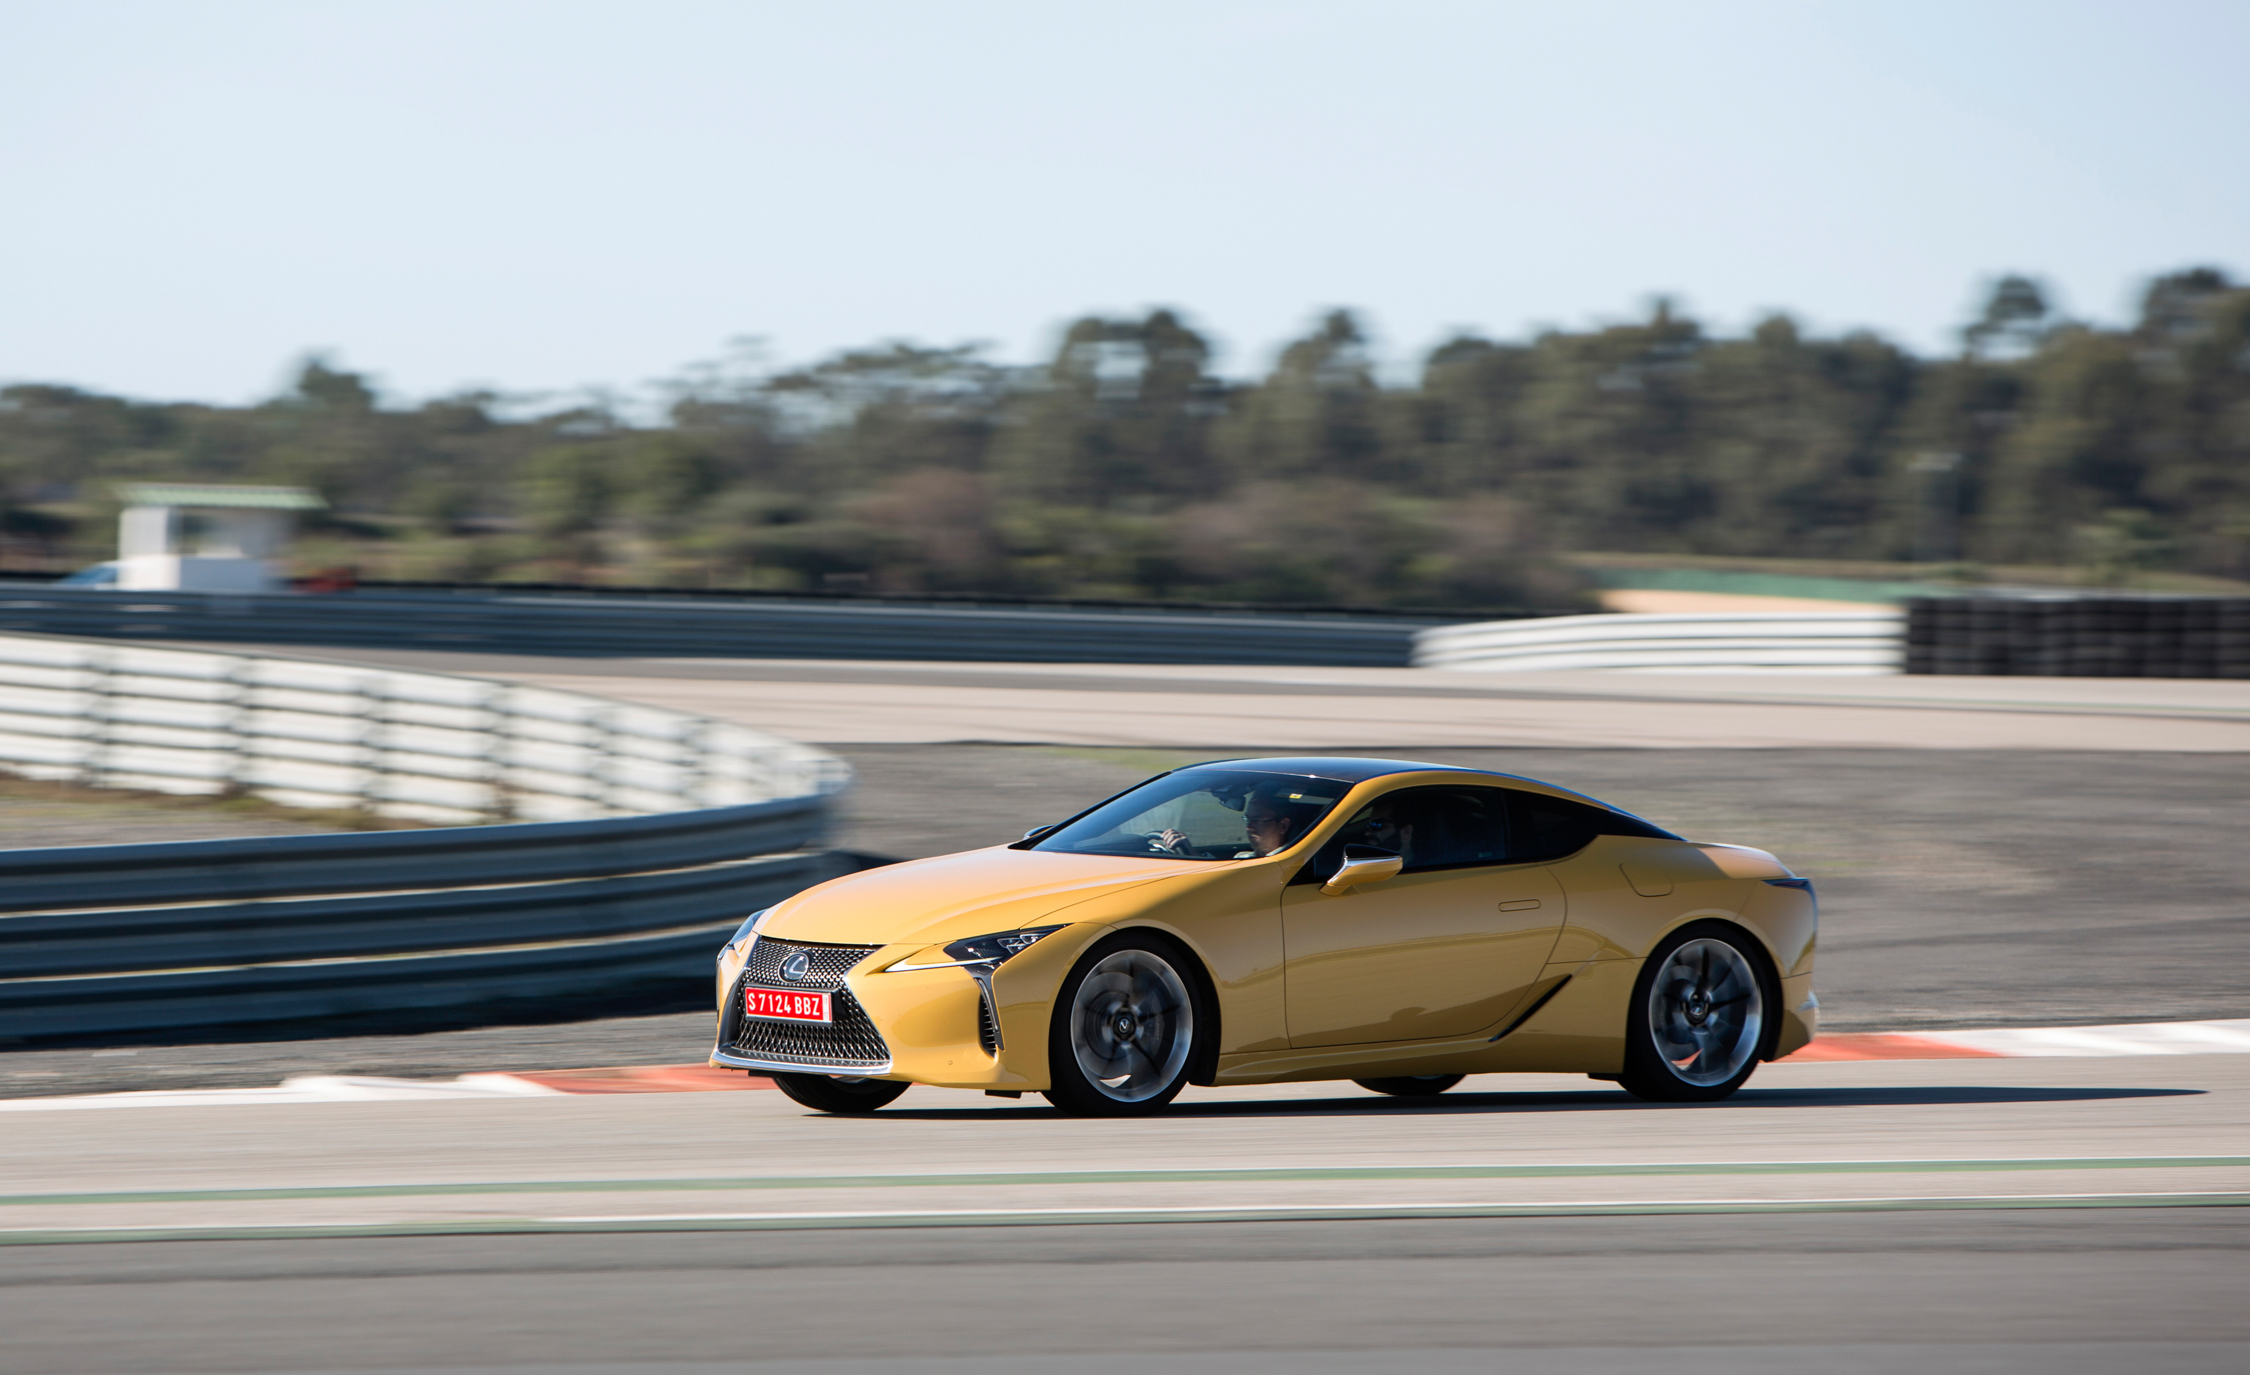 2018 Lexus Lc 500 Performance Side And Front View (Photo 22 of 84)